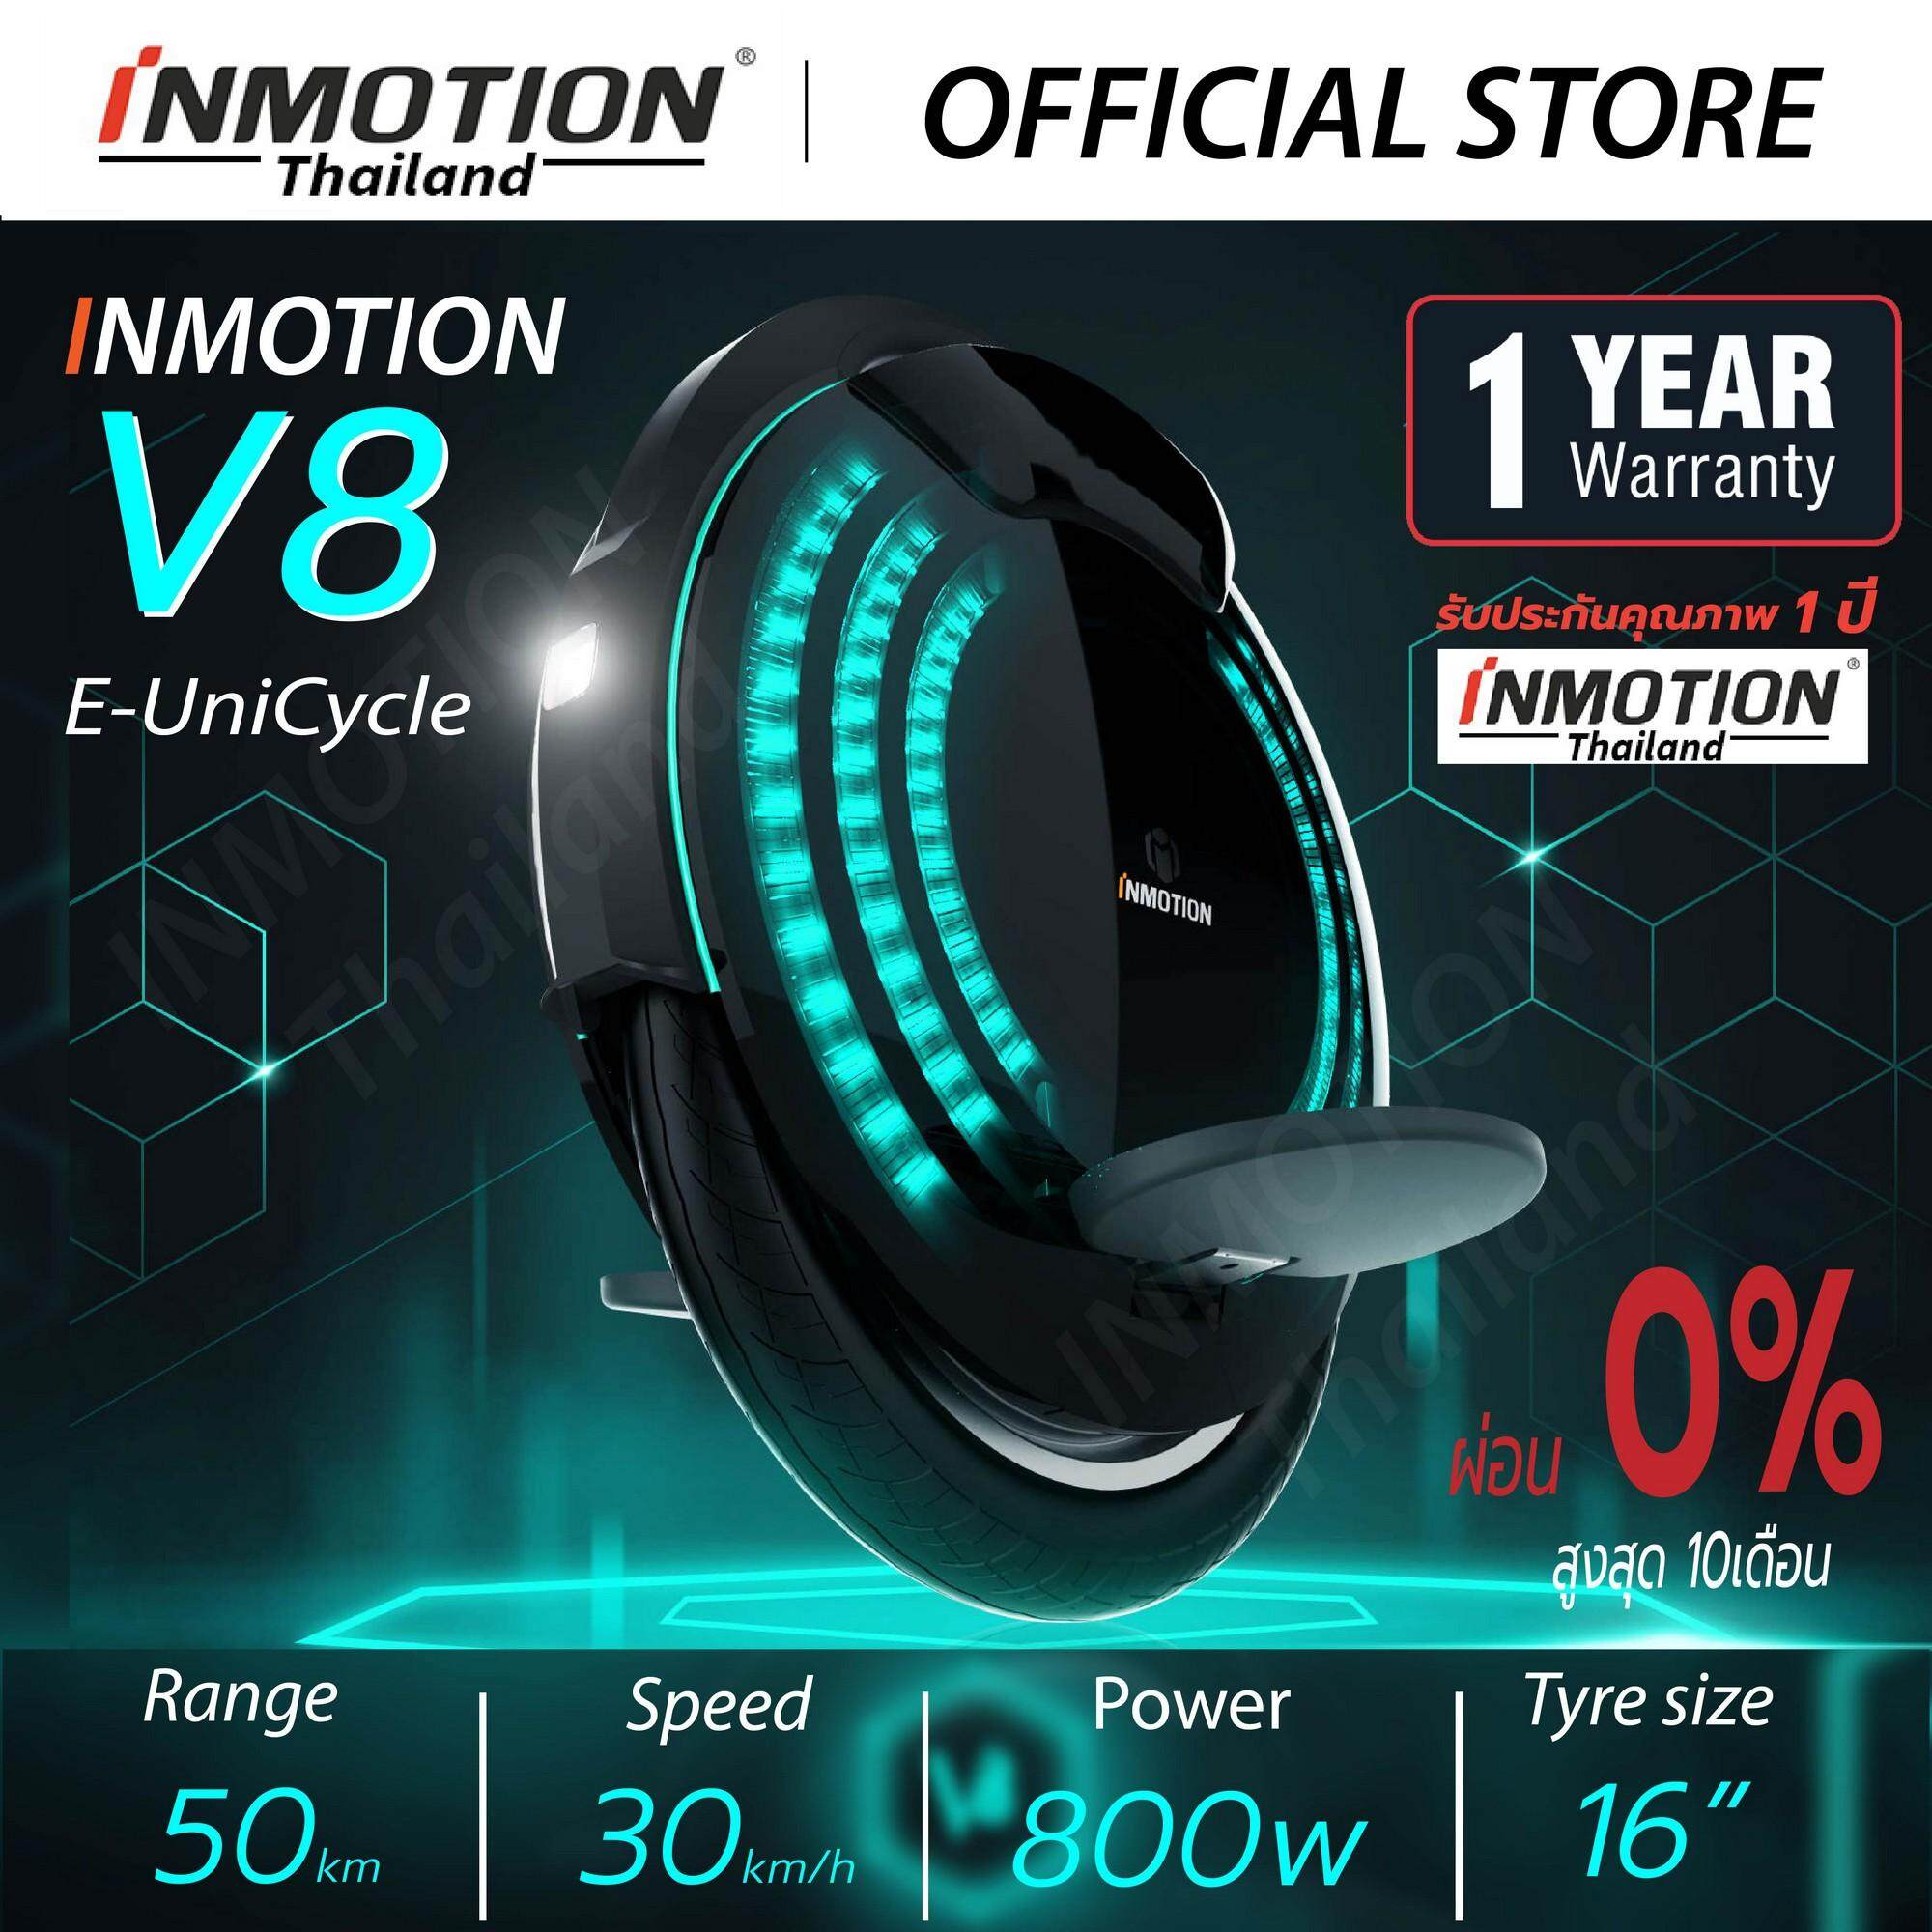 รถล้อเดียวไฟฟ้า Inmotion V8 (electric Unicycle) By Inmotion Thailand (by Ewheels Thailand).